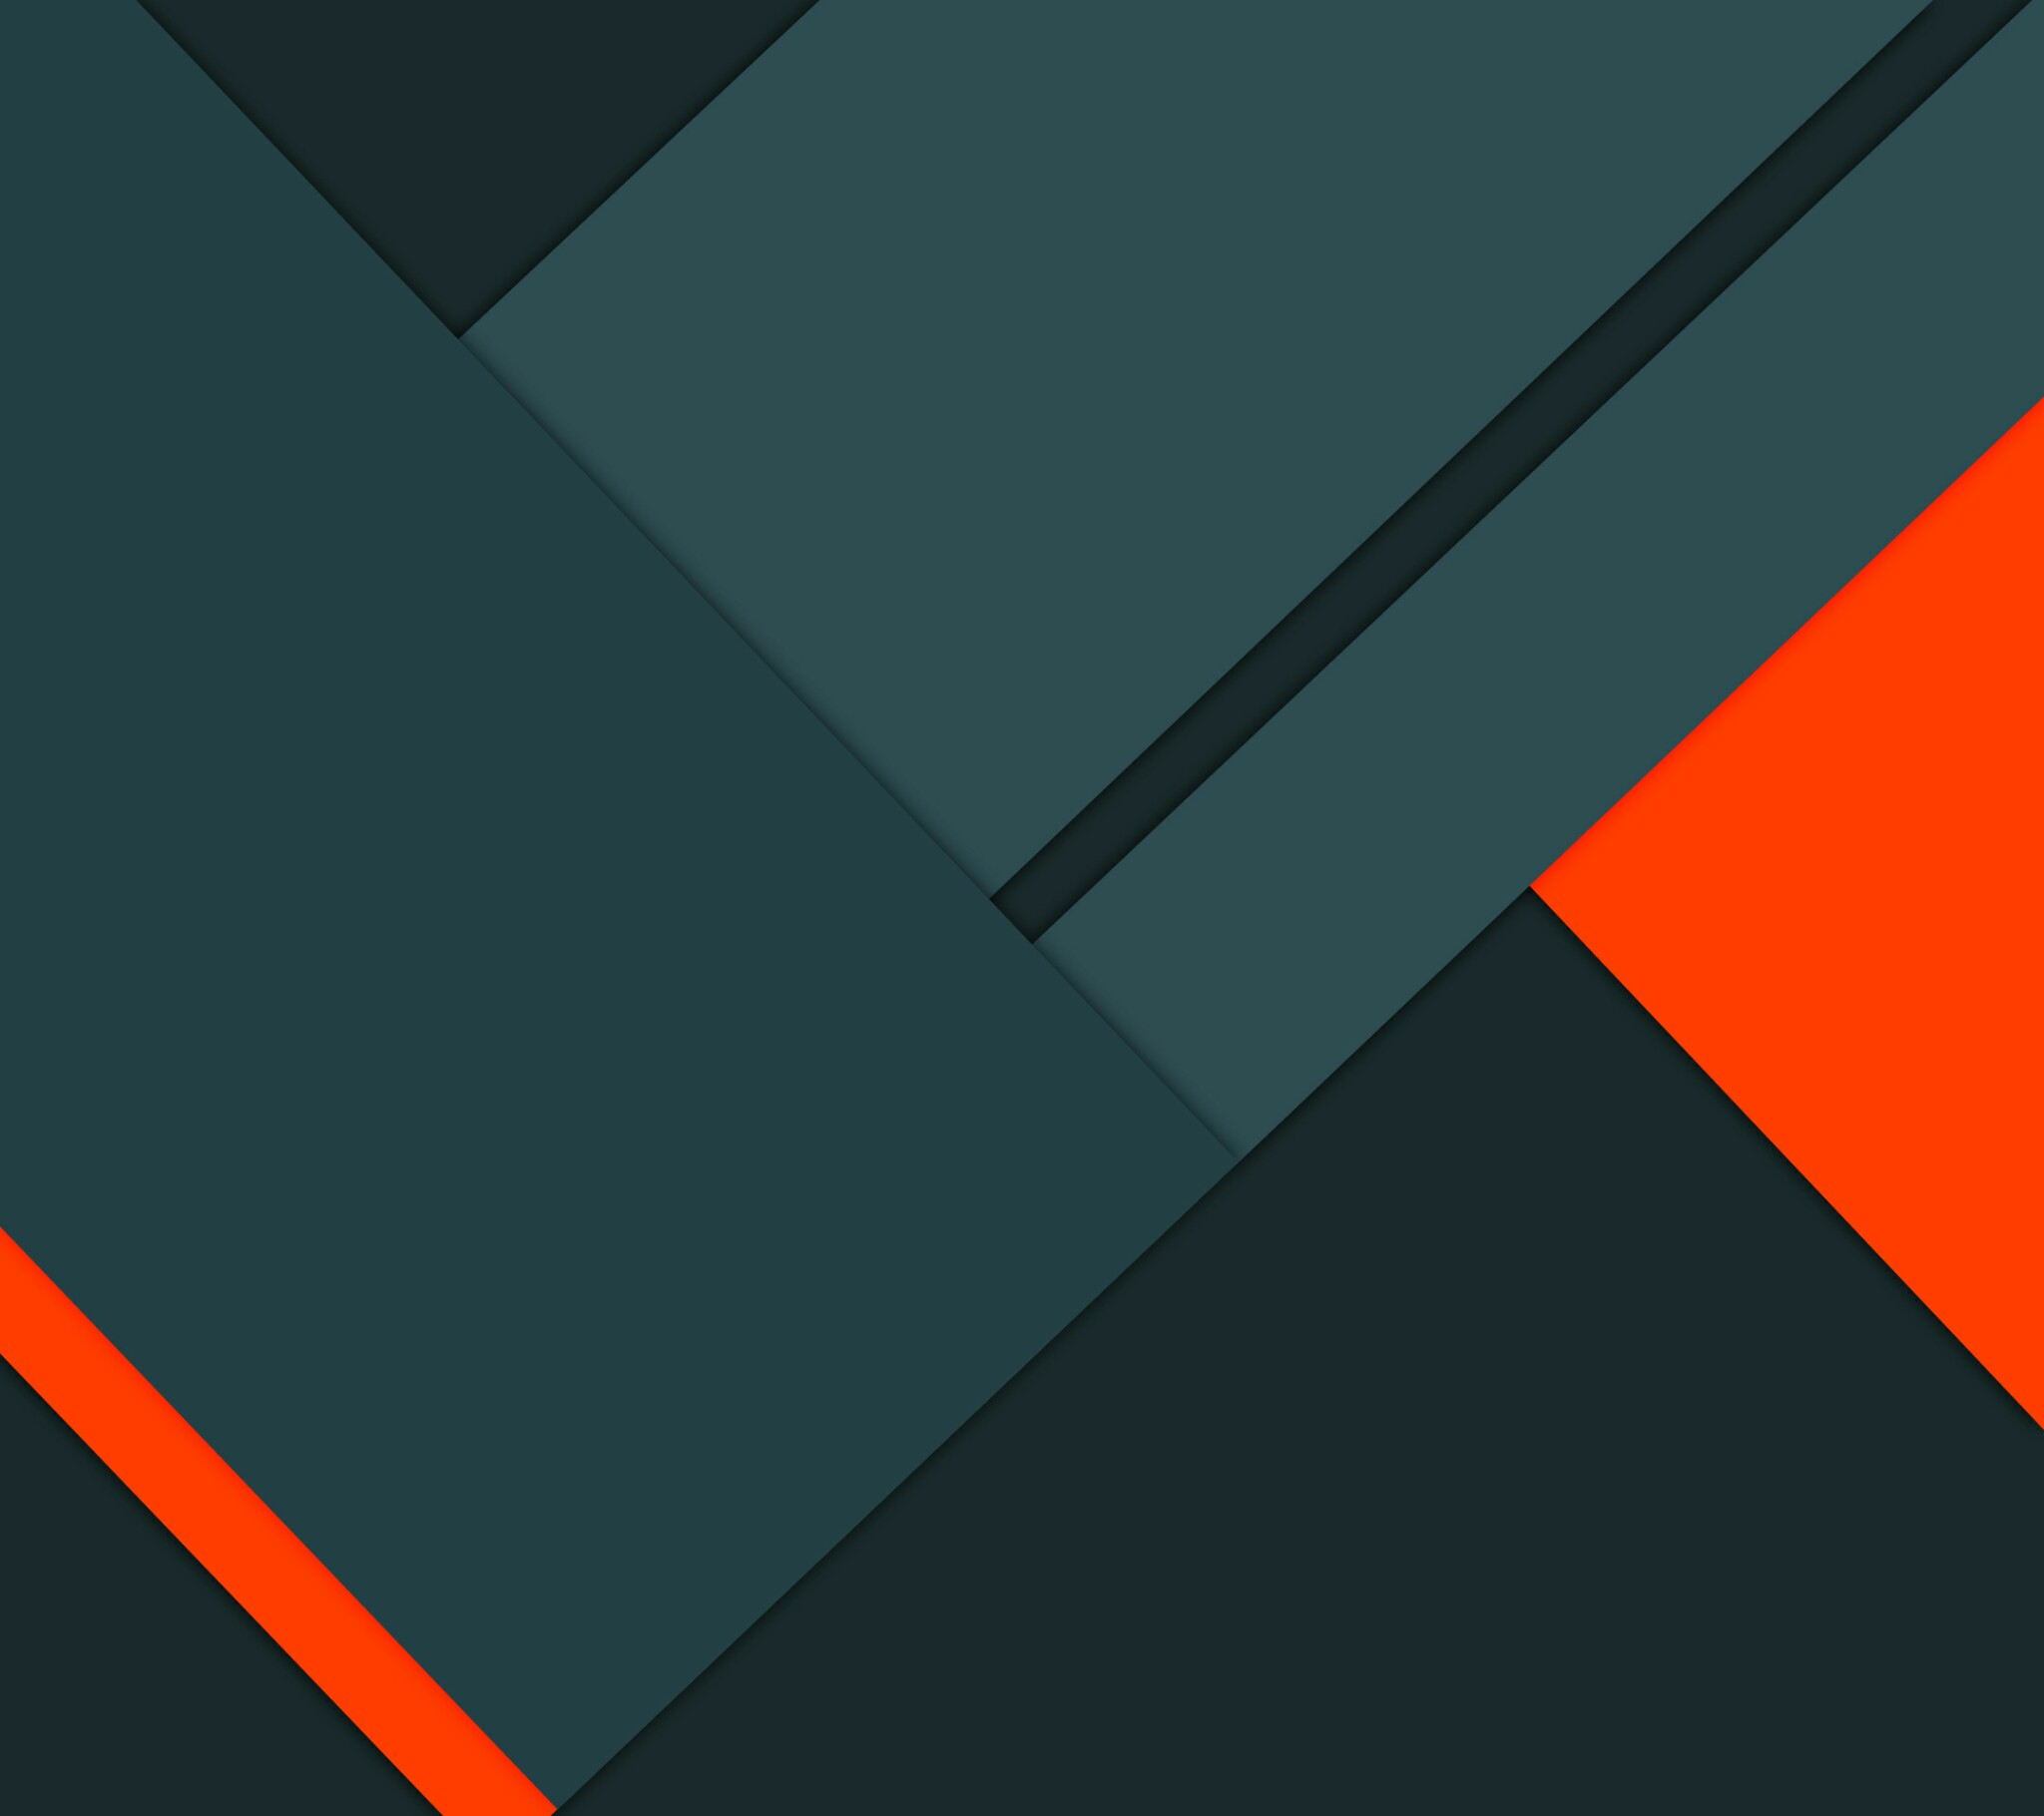 Android M Wallpaper Pack